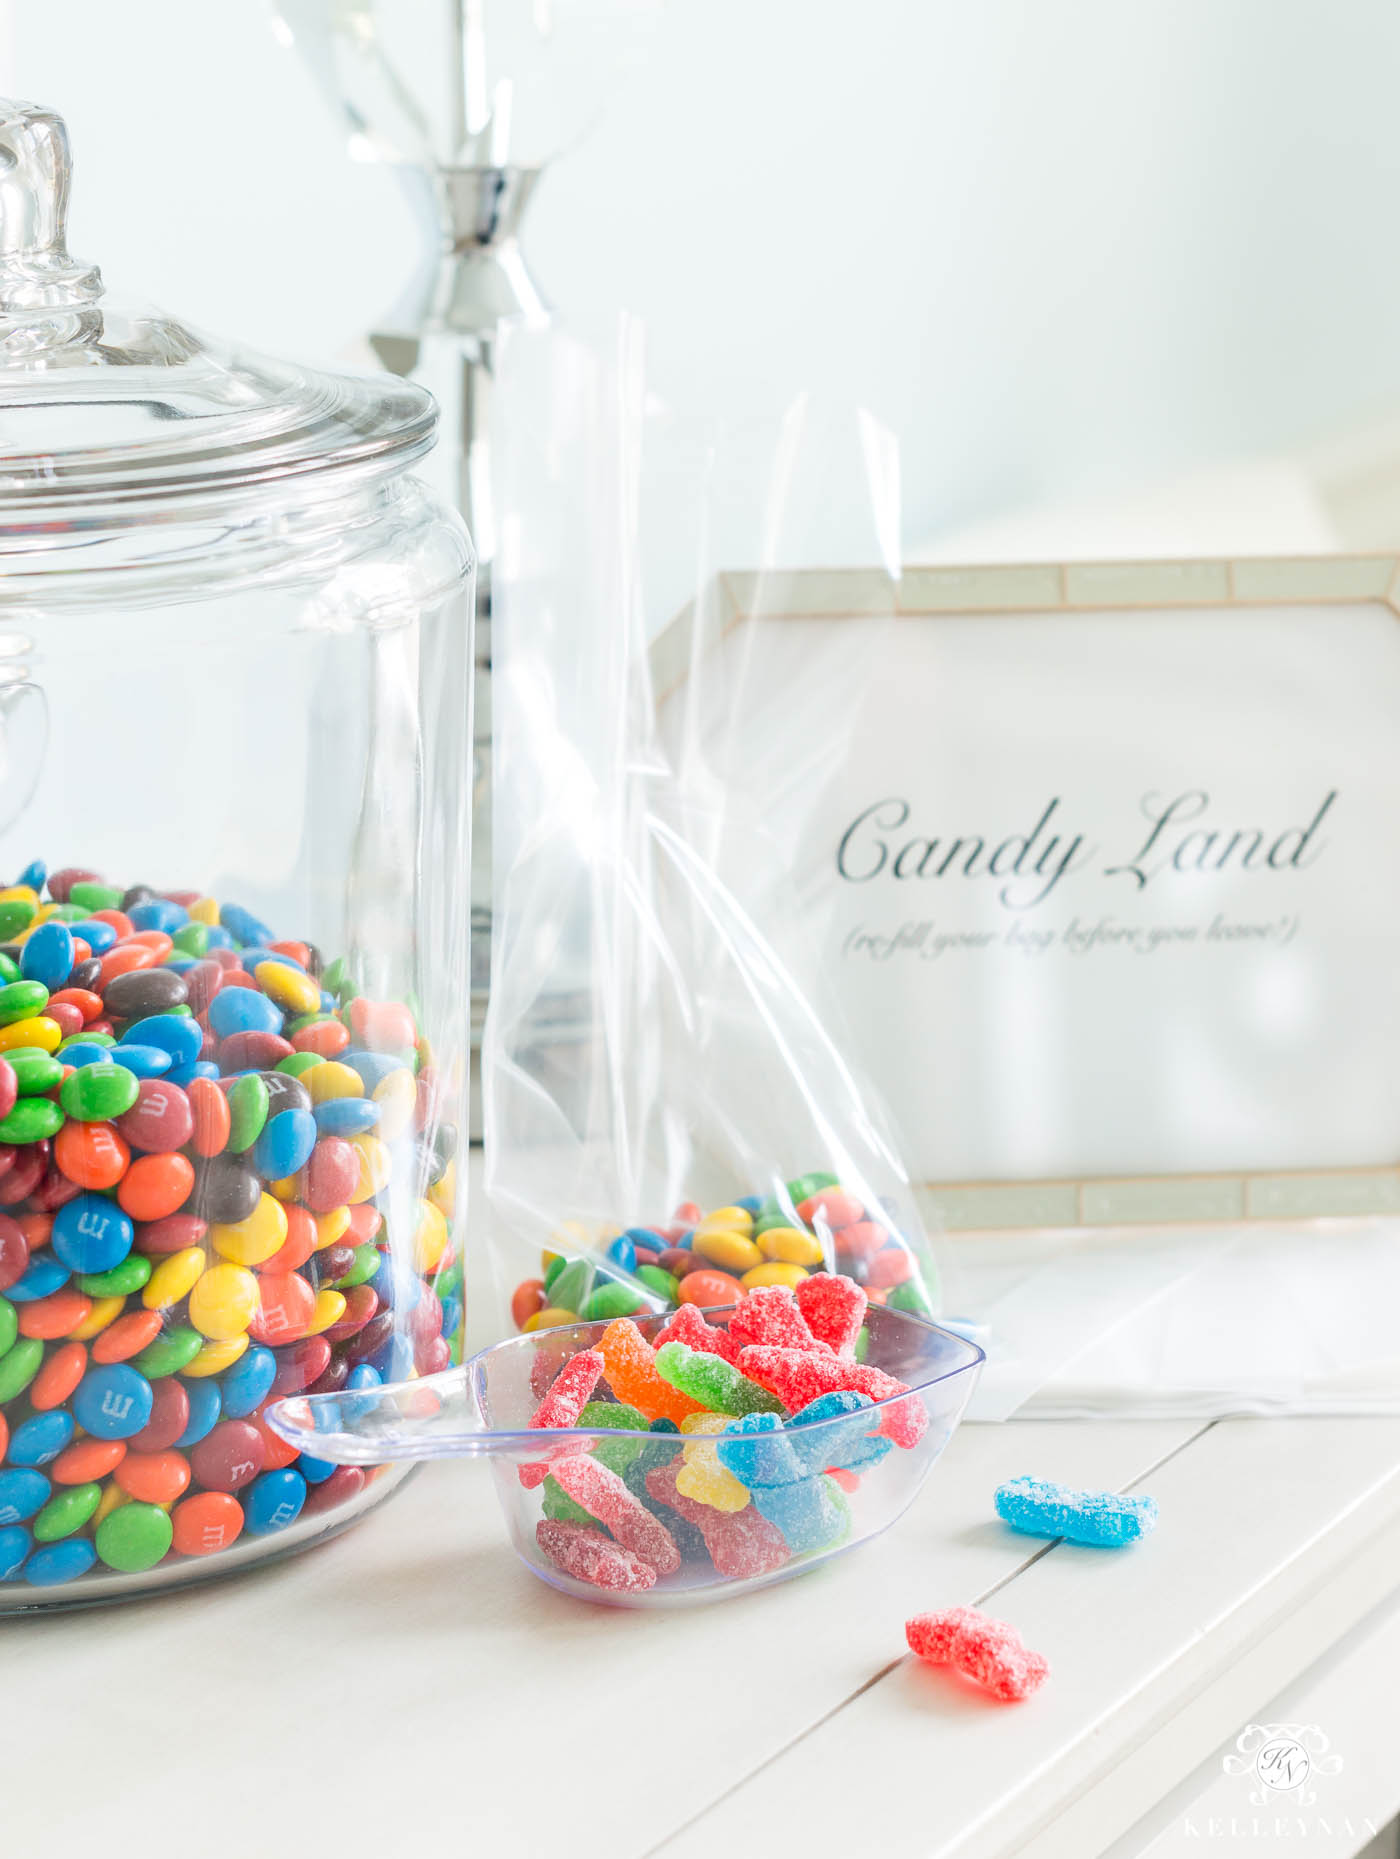 Candy land grab bags for showers, parties, and game nights